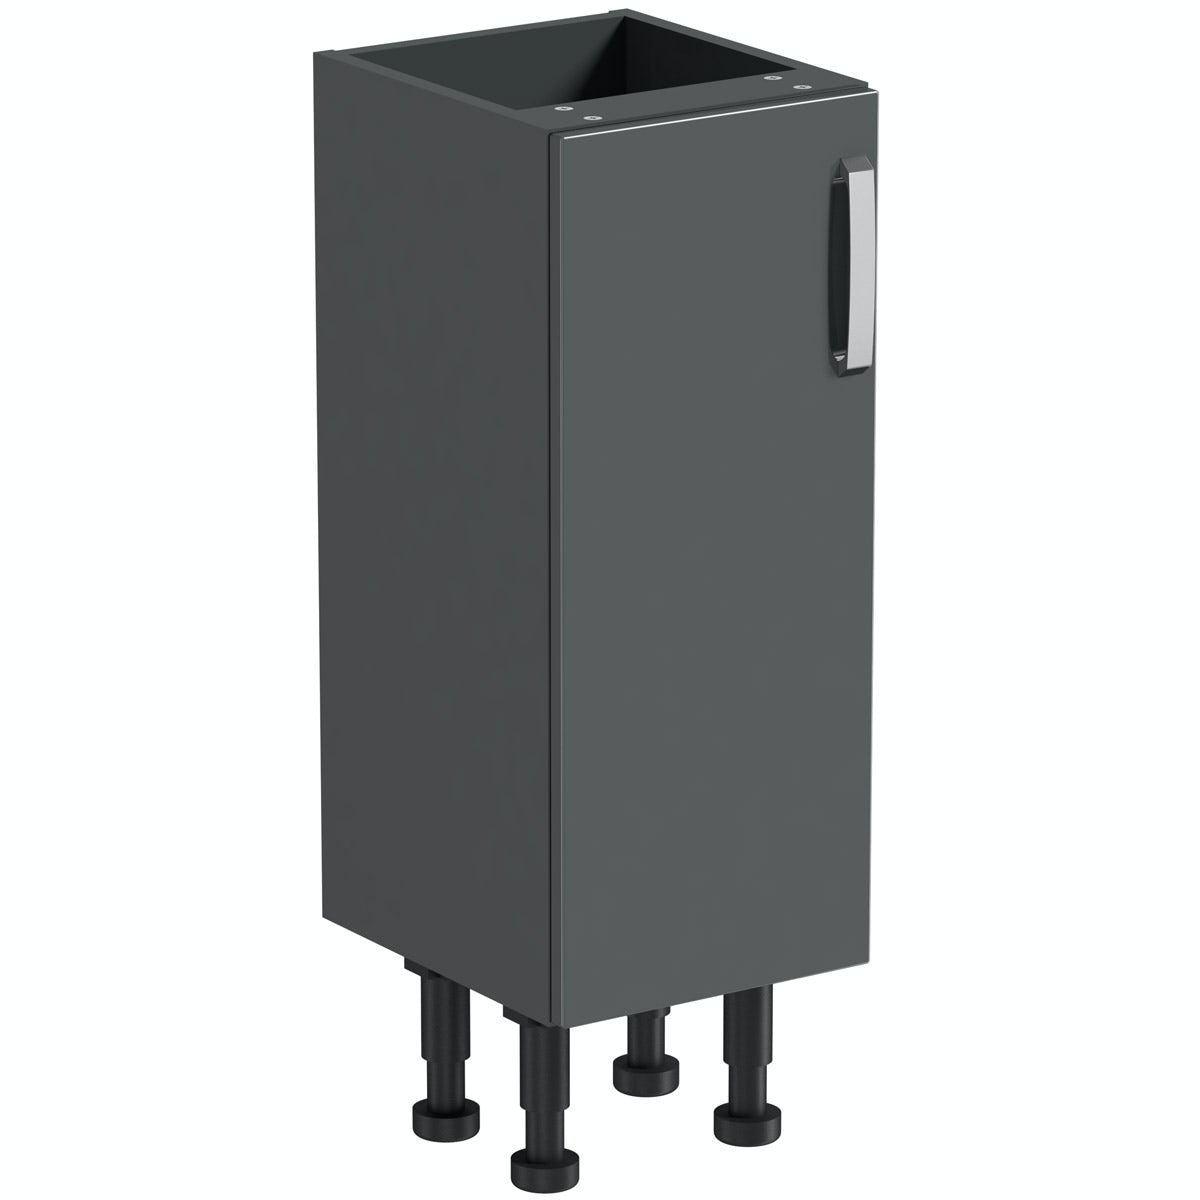 Mode Nouvel gloss grey floor cabinet 300mm